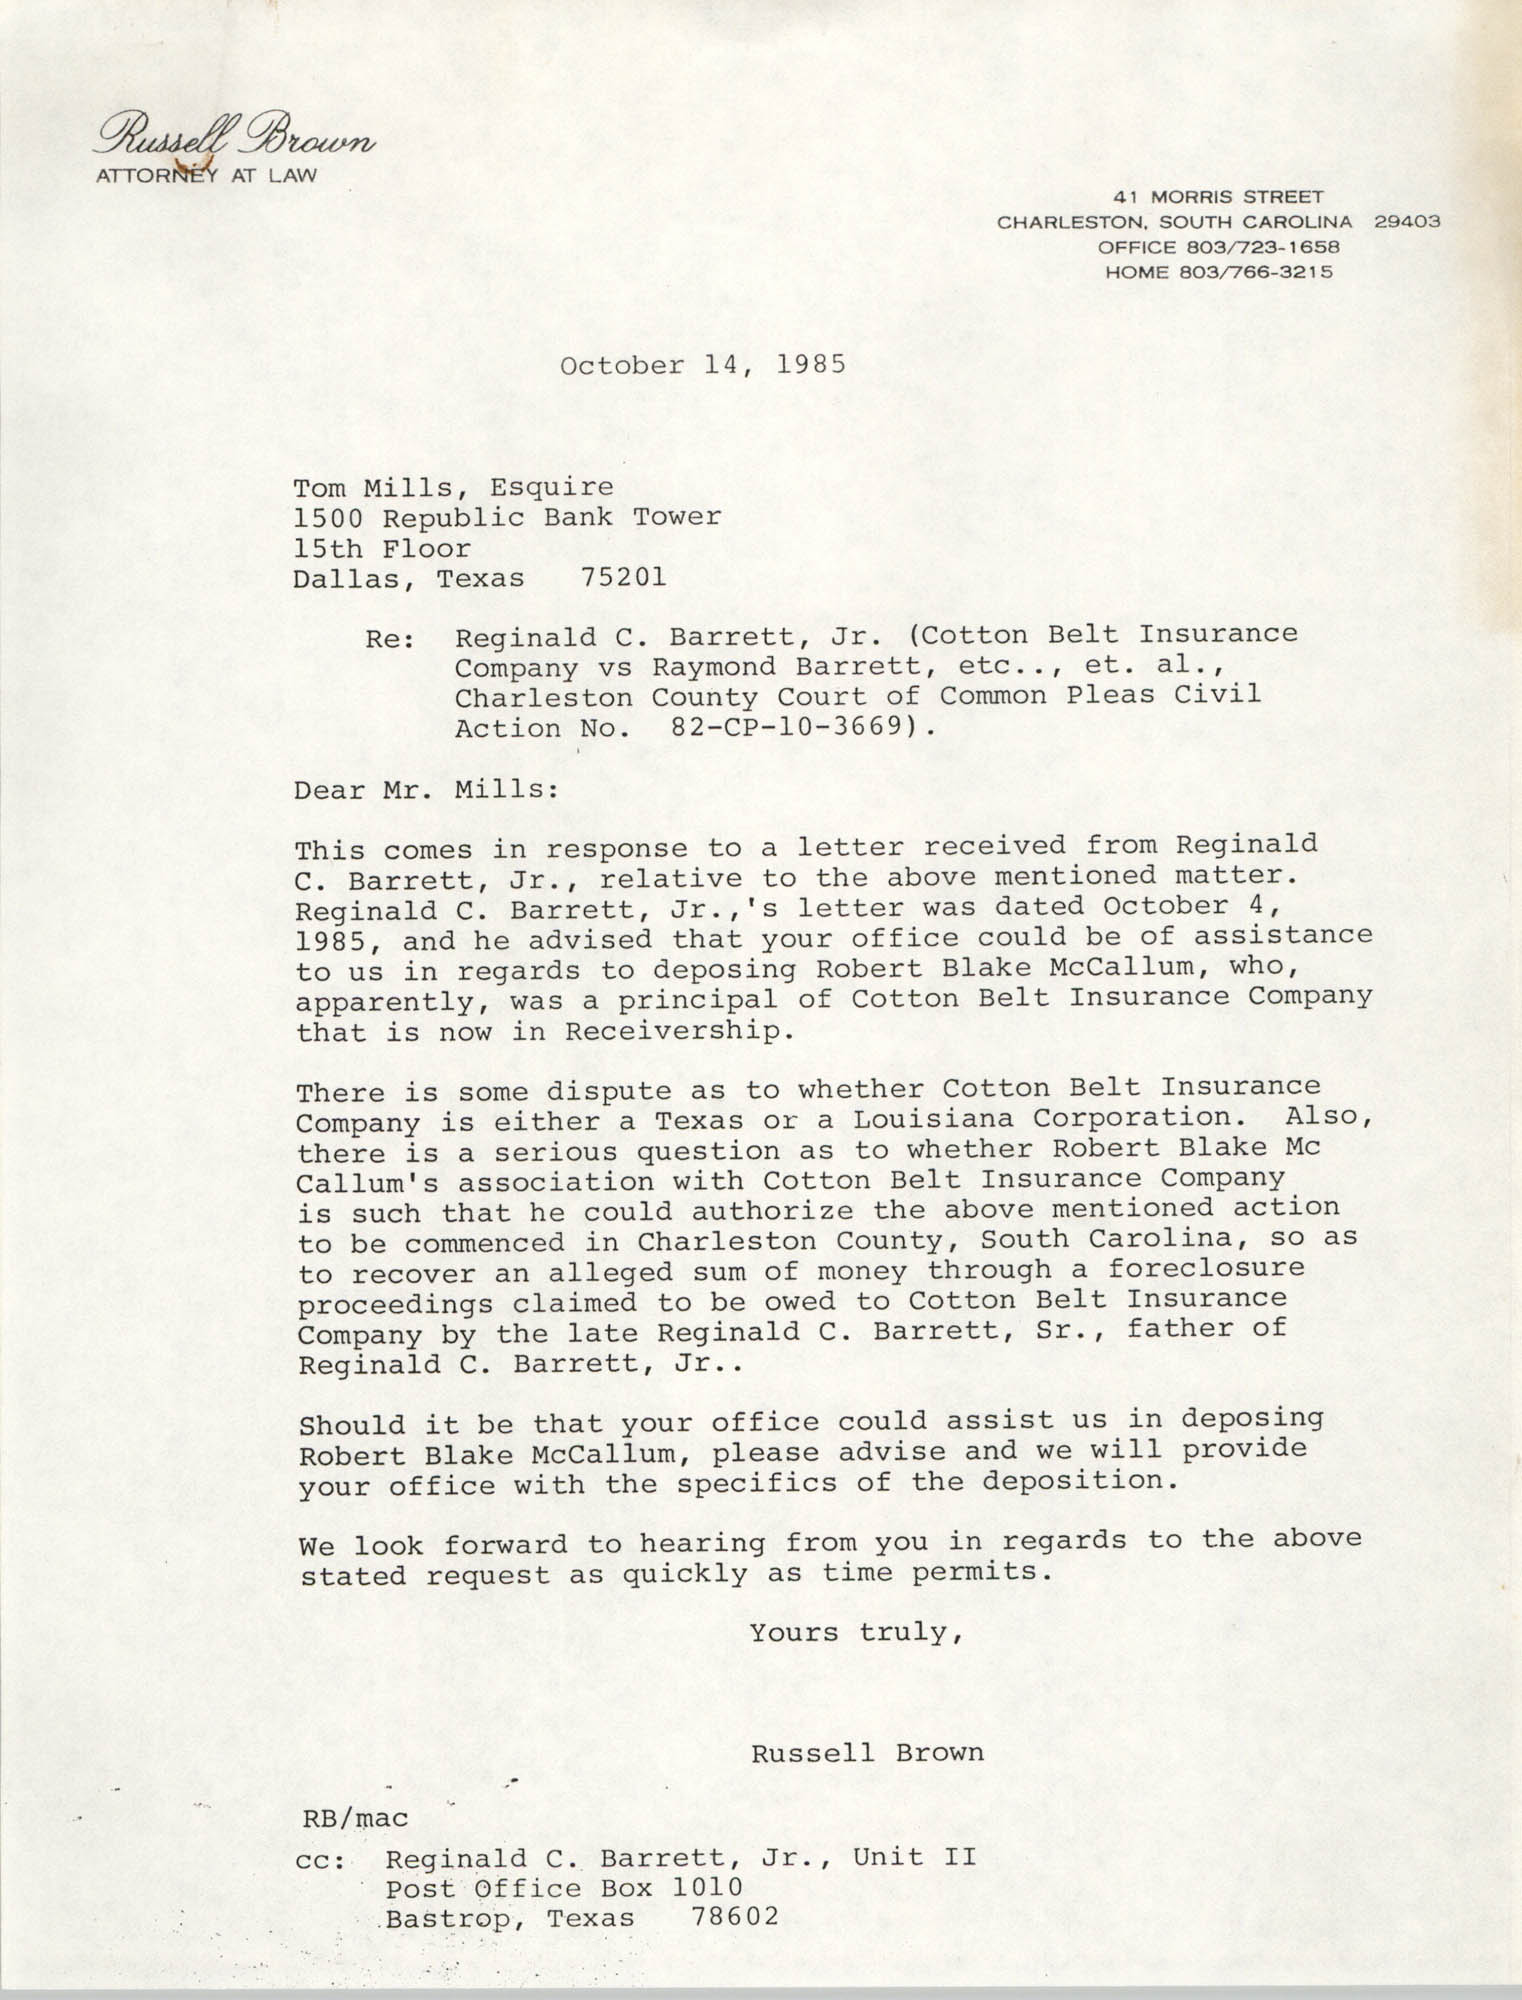 Letter from Russell Brown to Tom Mills, October 14, 1985